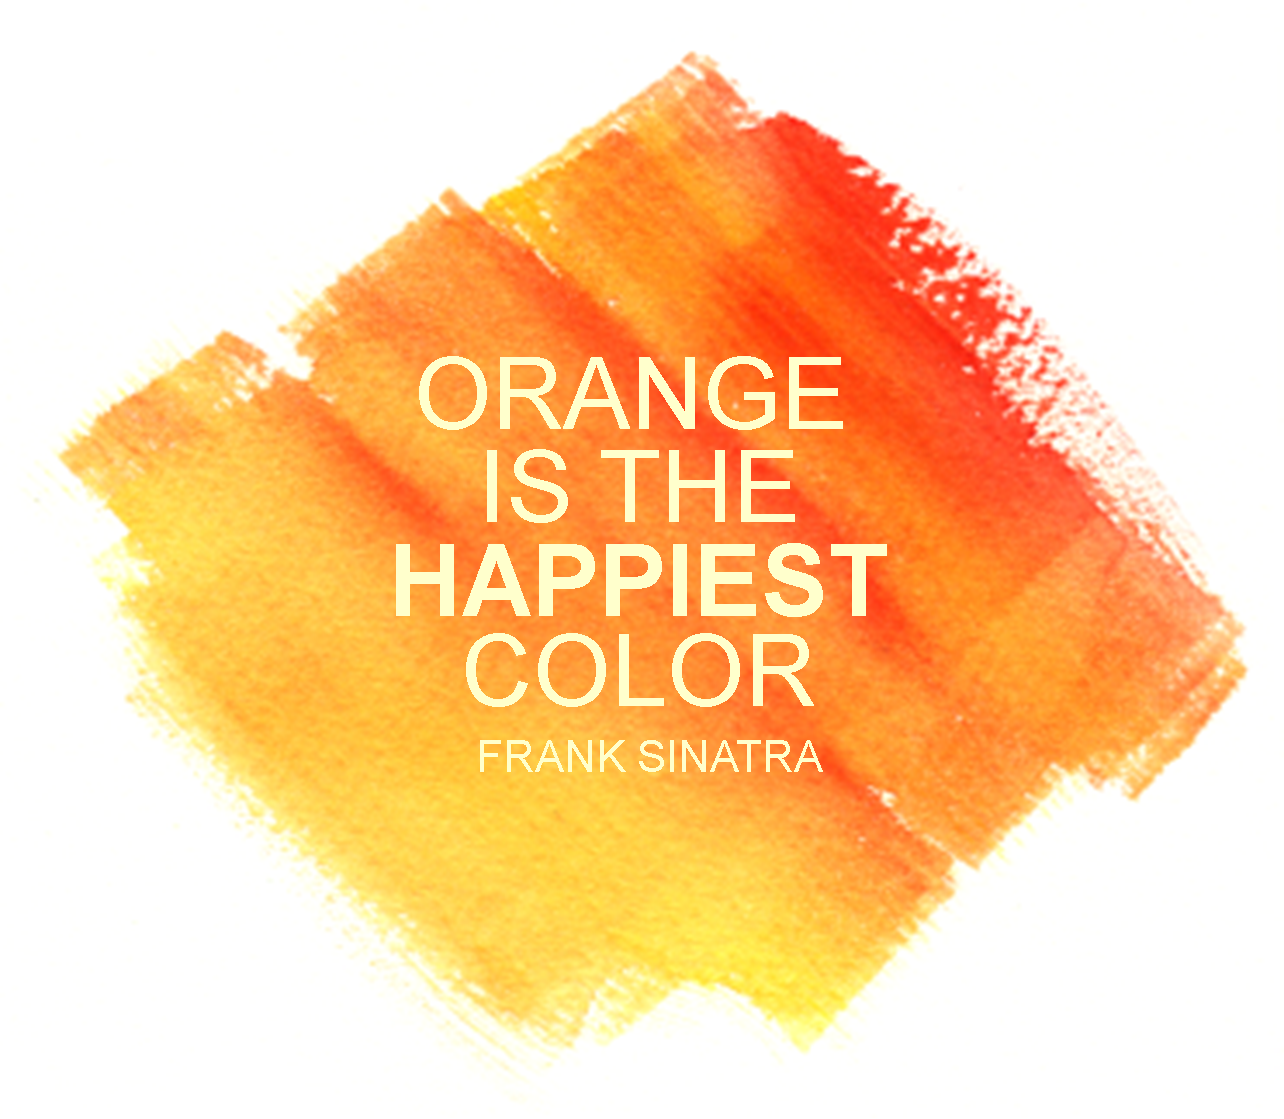 Orange is the happiest color. Frank Sinatra